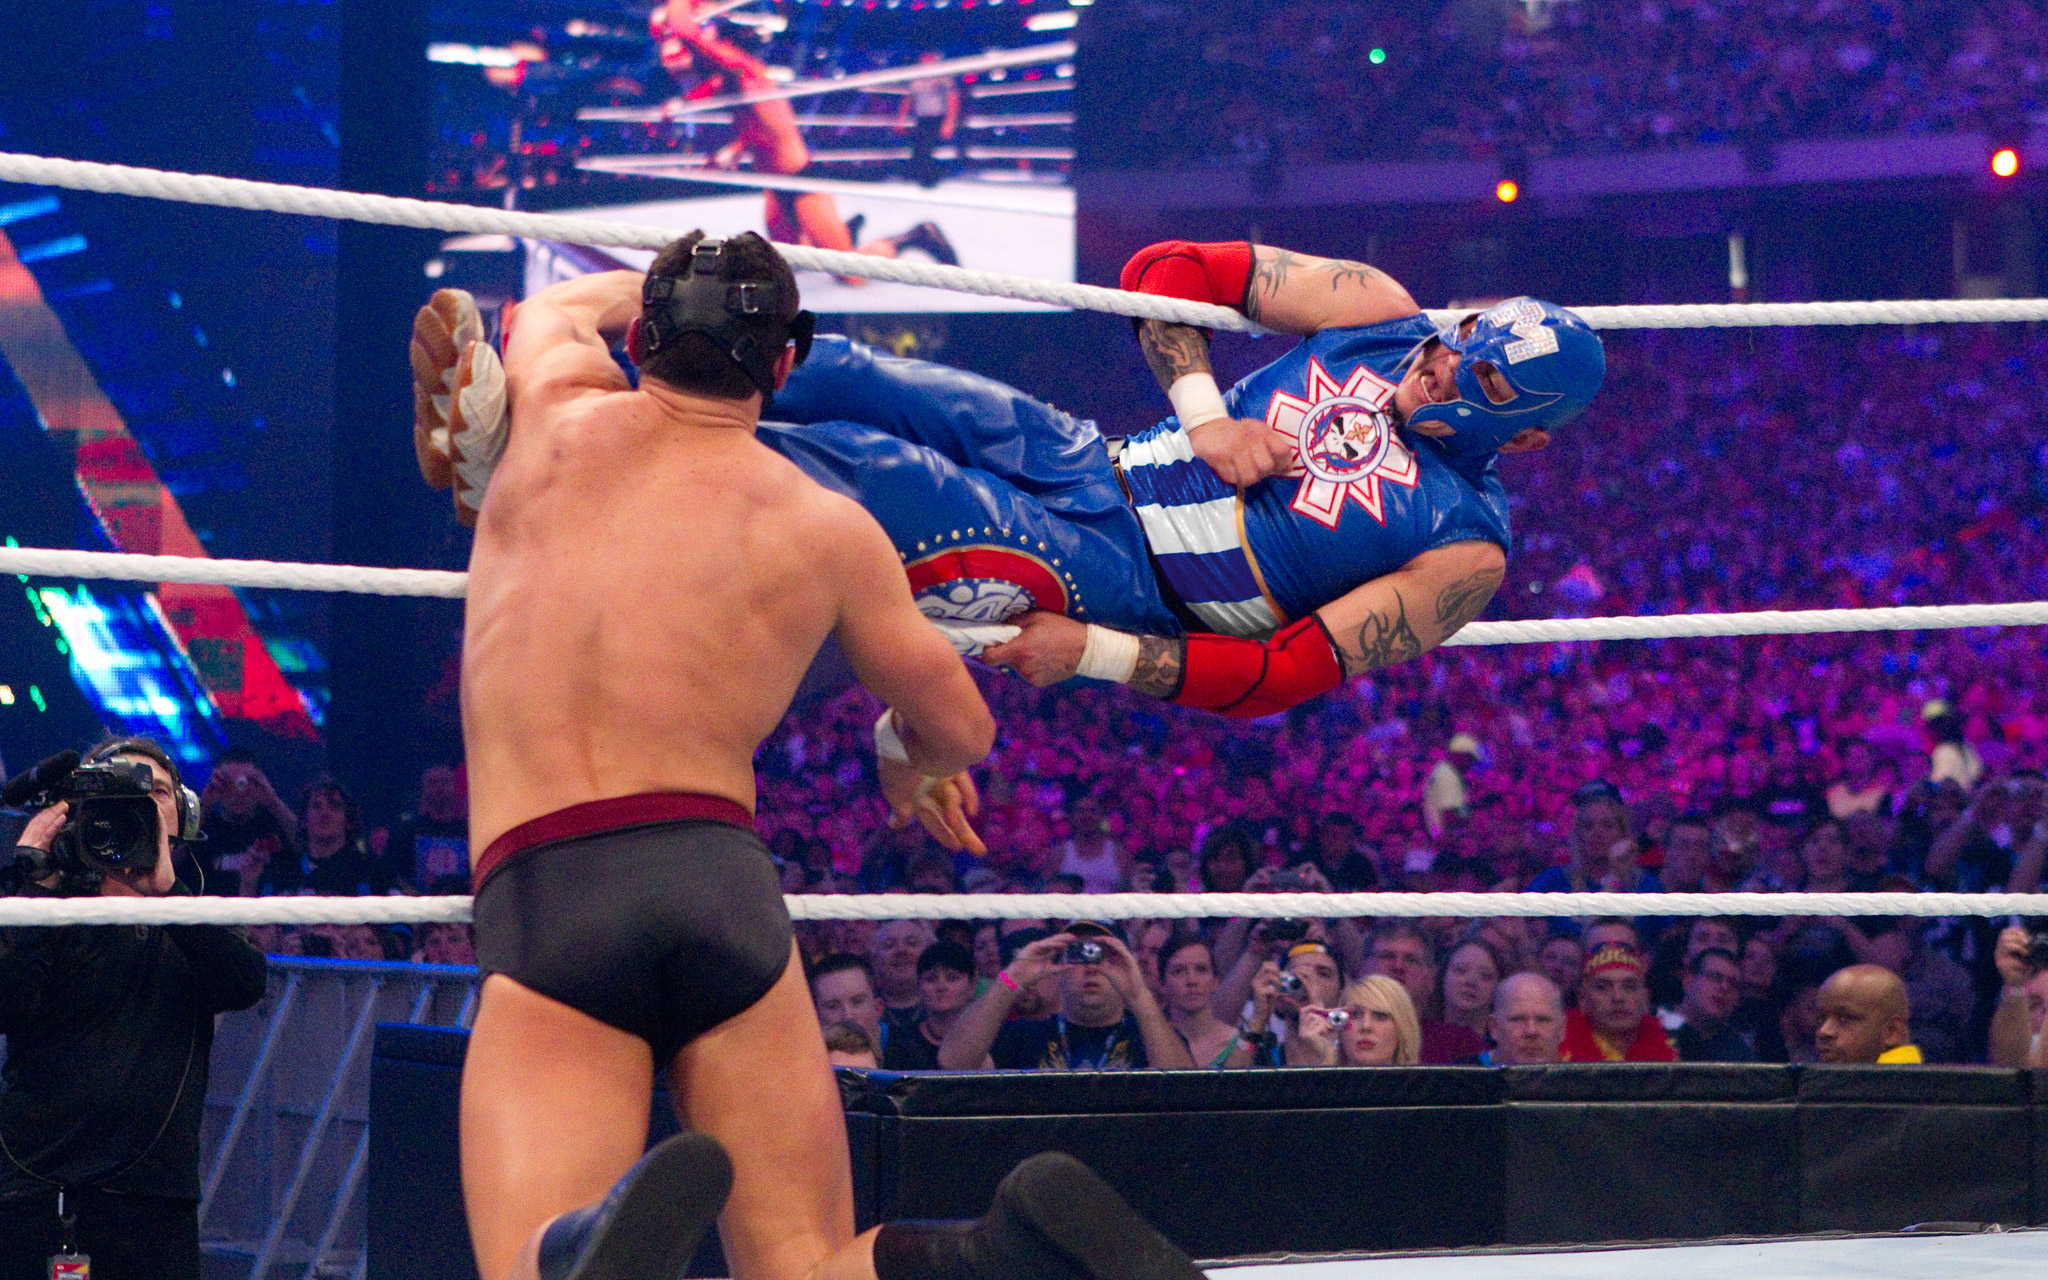 Rey Mysterio Performs His Finishing Move: